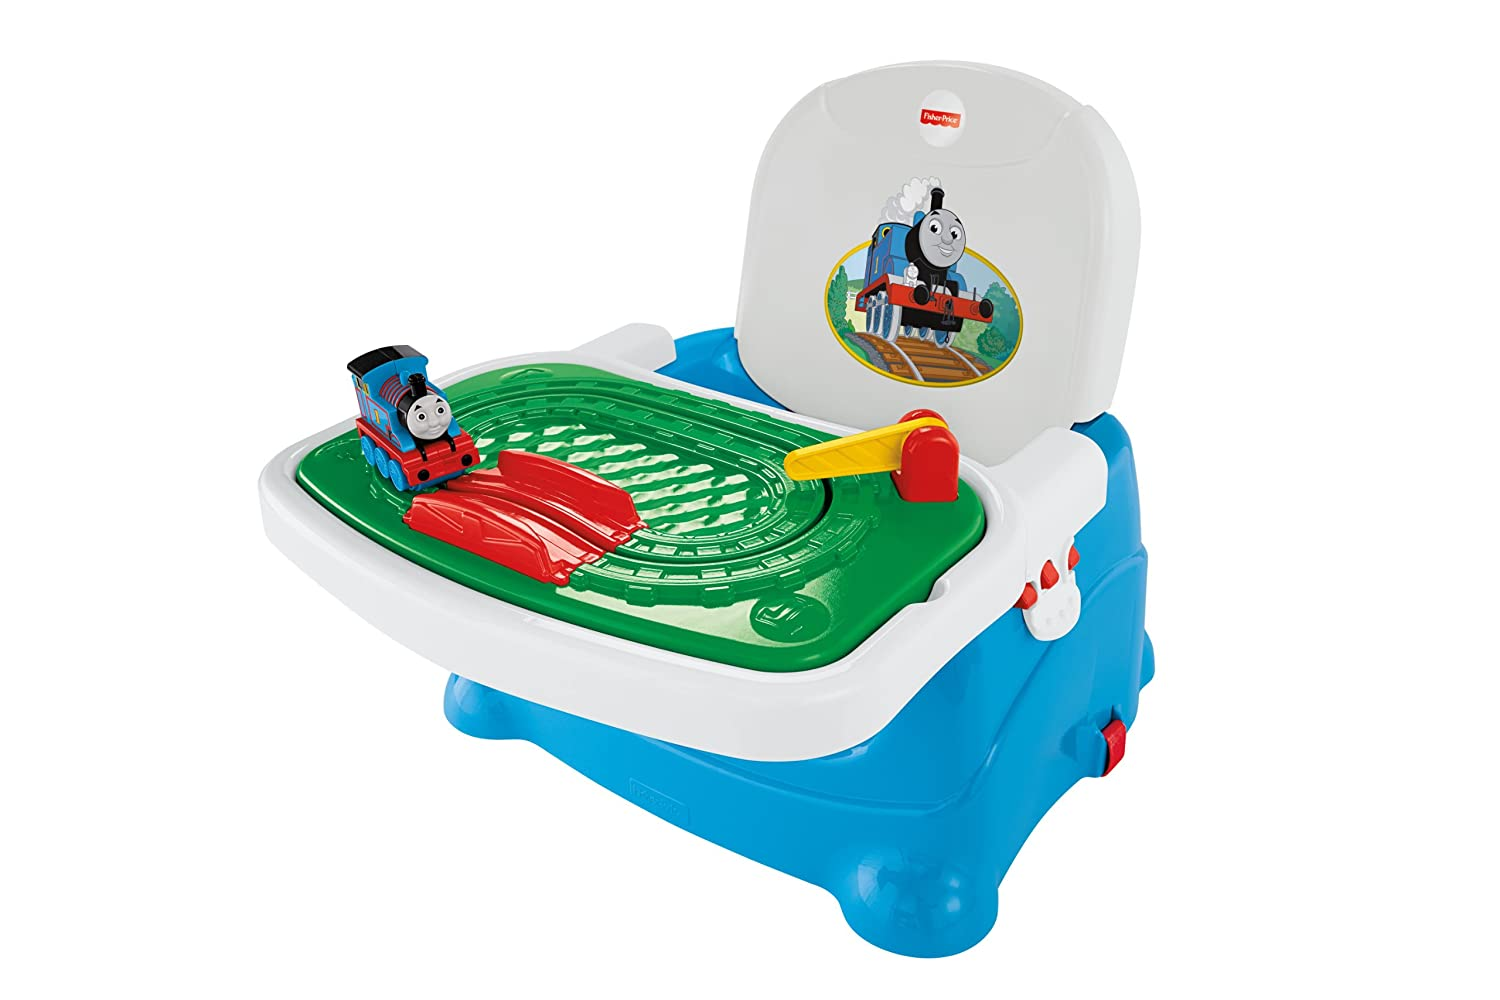 Amazon.com : Fisher Price Thomas U0026 Friends, Thomas Tray Play Booster : Chair  Booster Seats : Baby